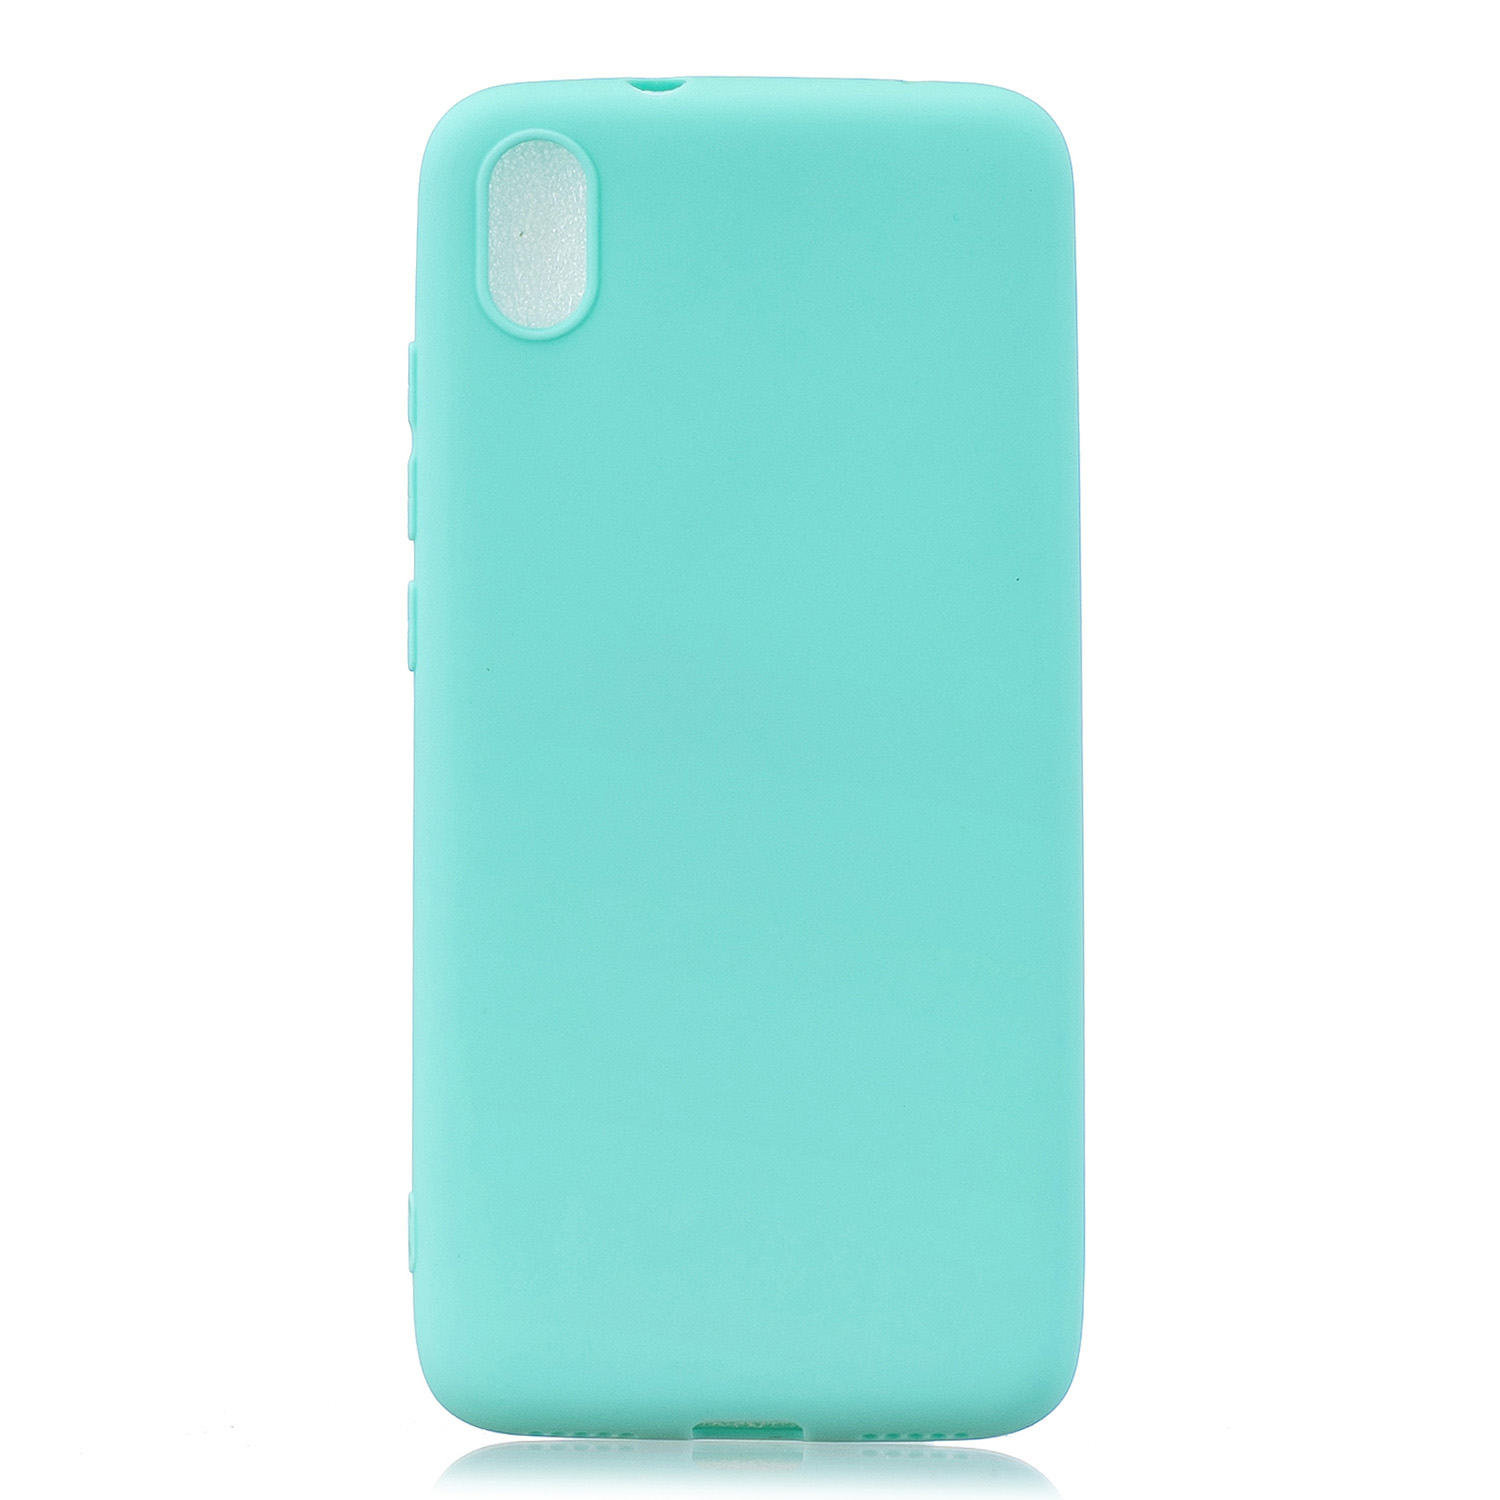 For Redmi 7A Lovely Candy Color Matte TPU Anti-scratch Non-slip Protective Cover Back Case Light blue